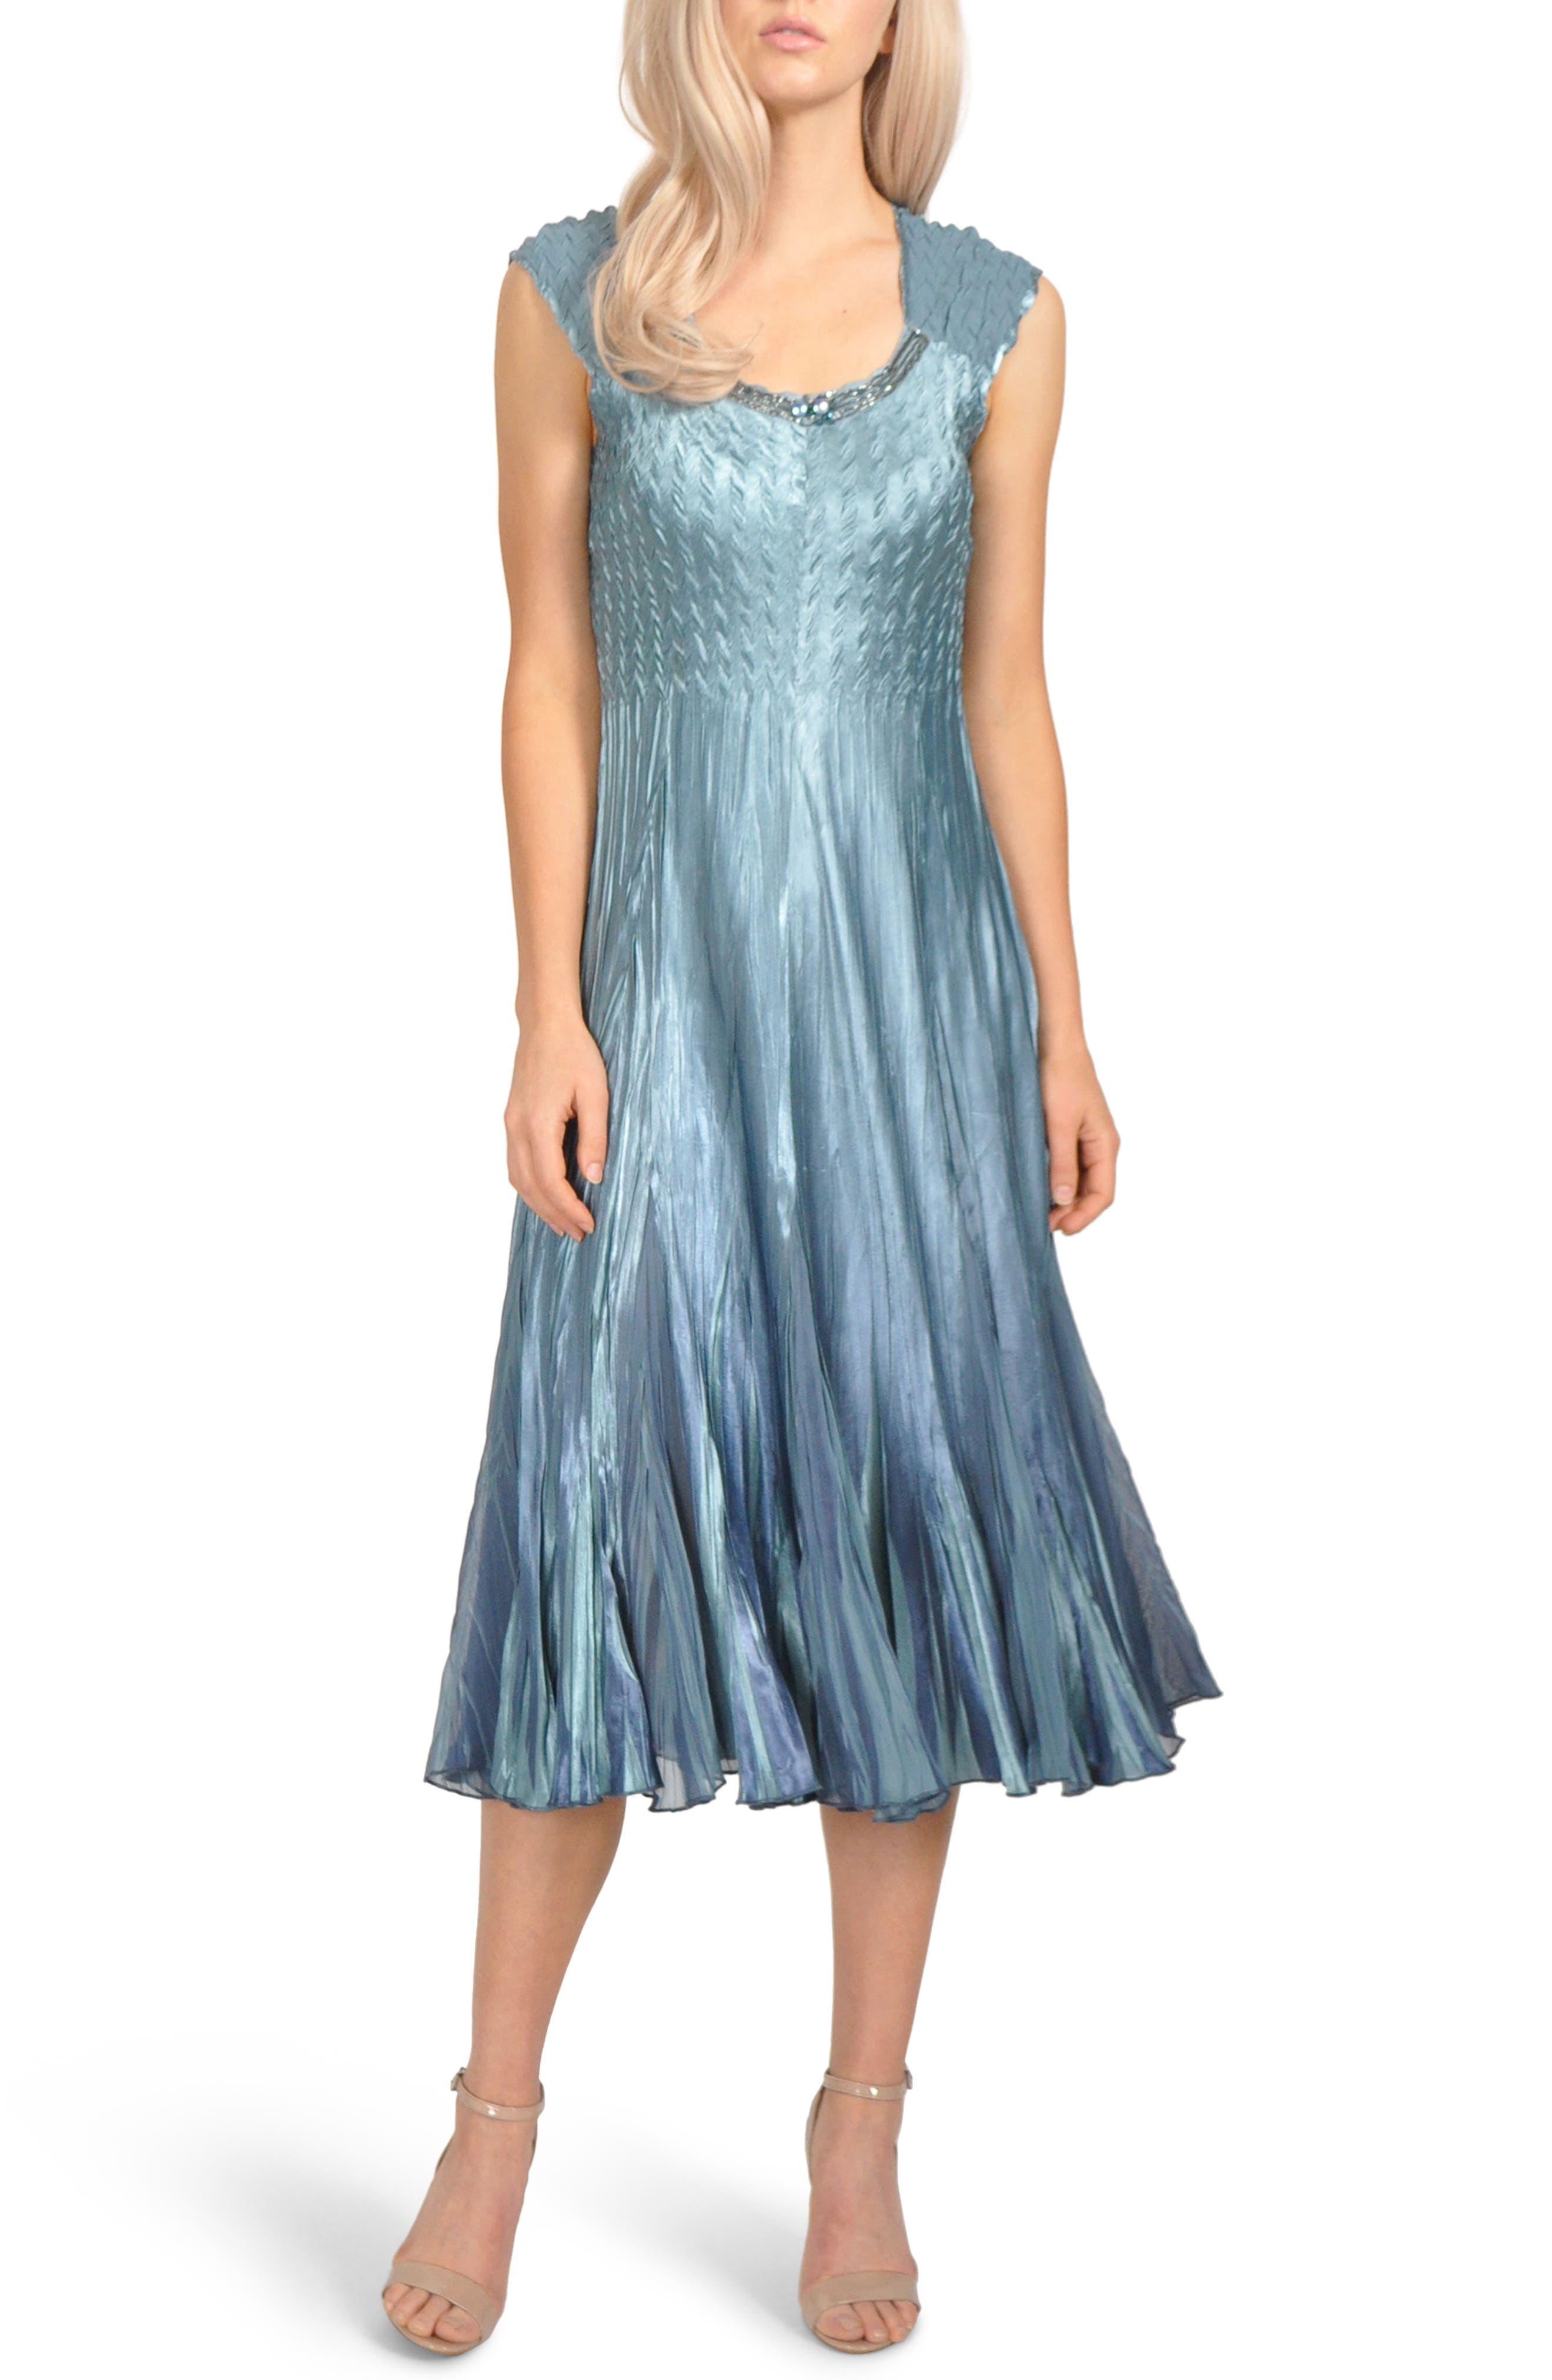 Embellished Pleat Mixed Media Dress with Jacket,                             Alternate thumbnail 4, color,                             SILVER BLUE OMBRE